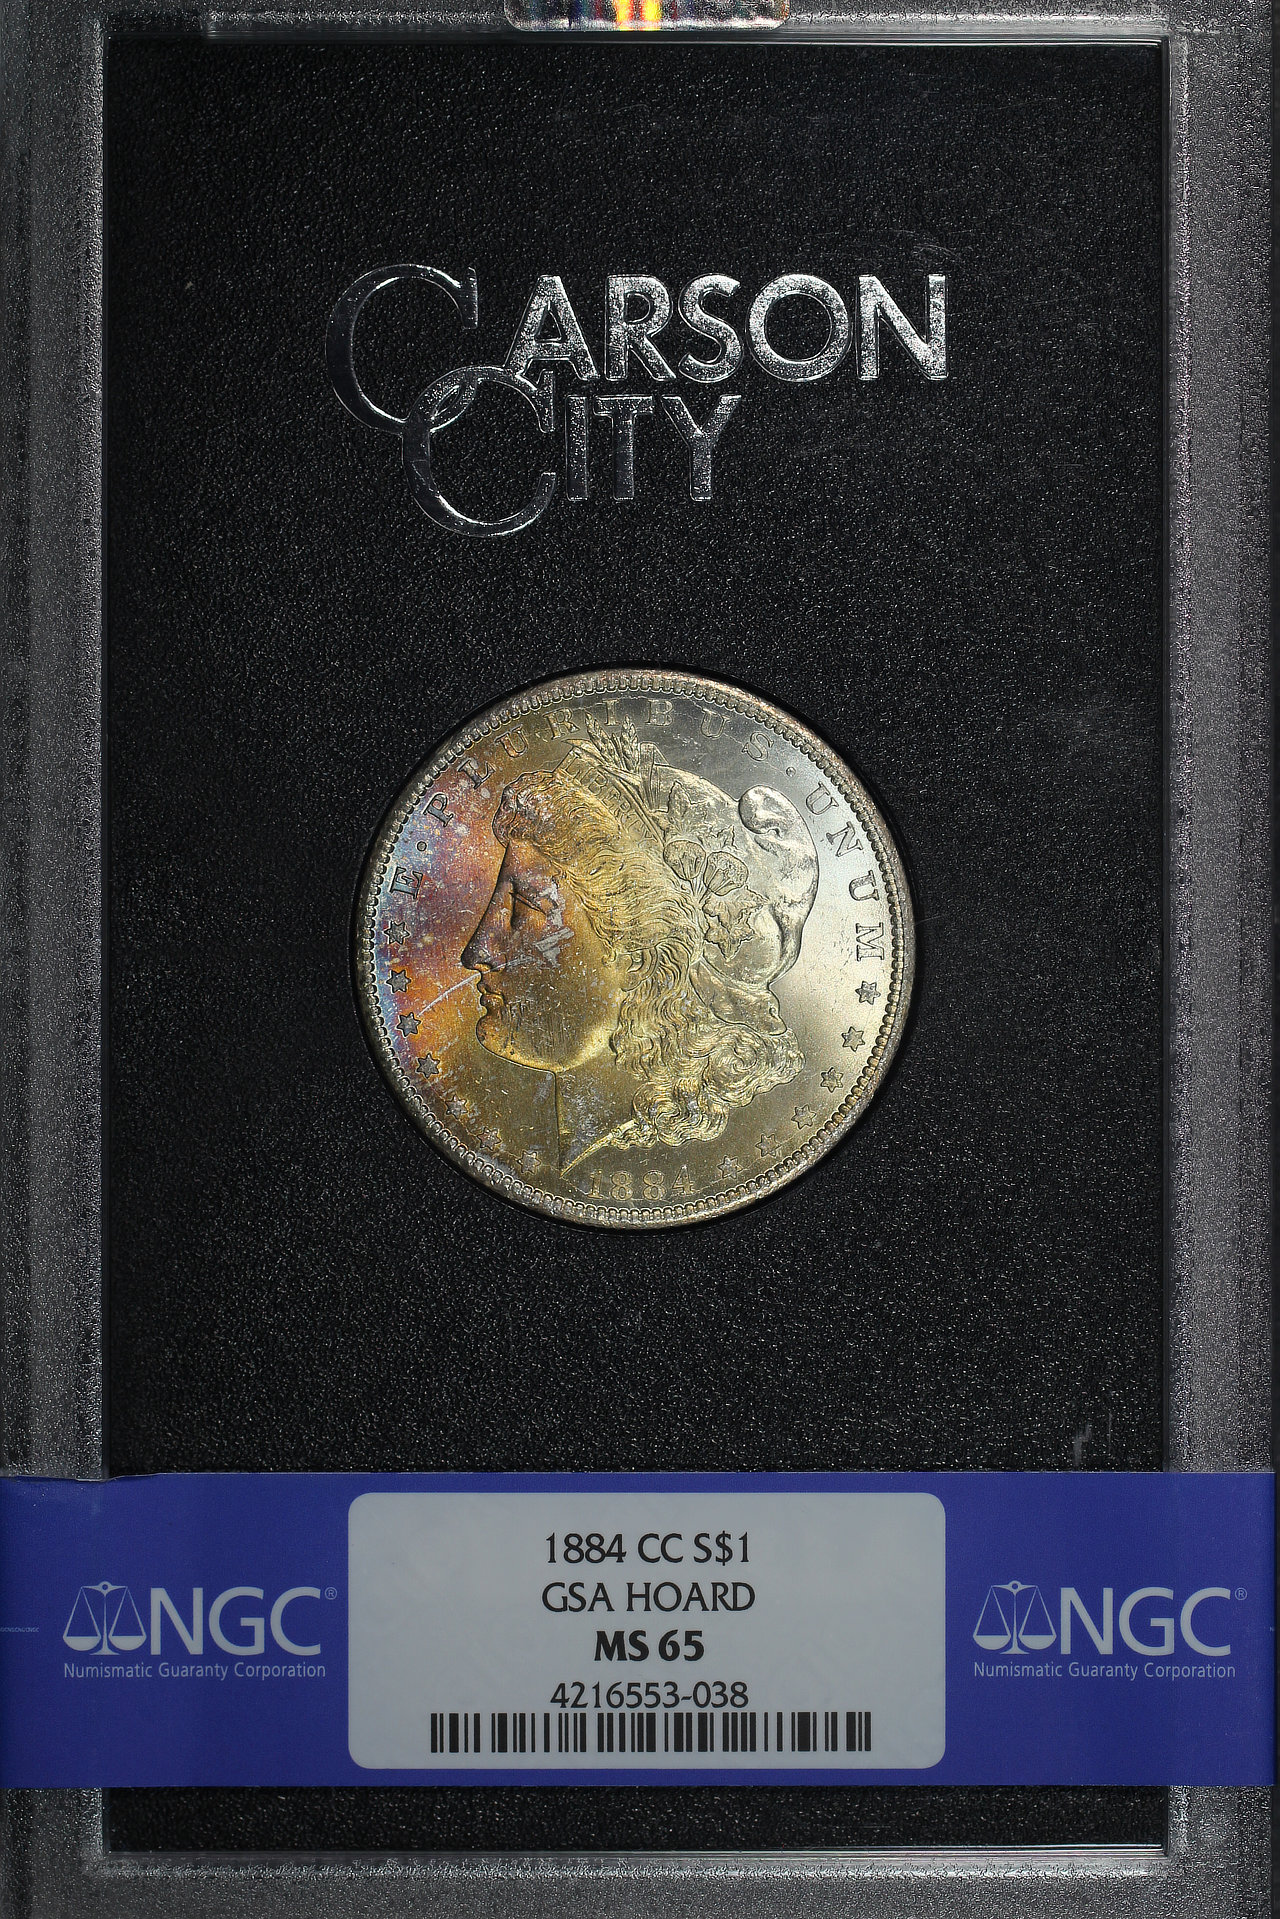 Obverse of 1884-CC GSA Morgan Dollar NGC MS-65